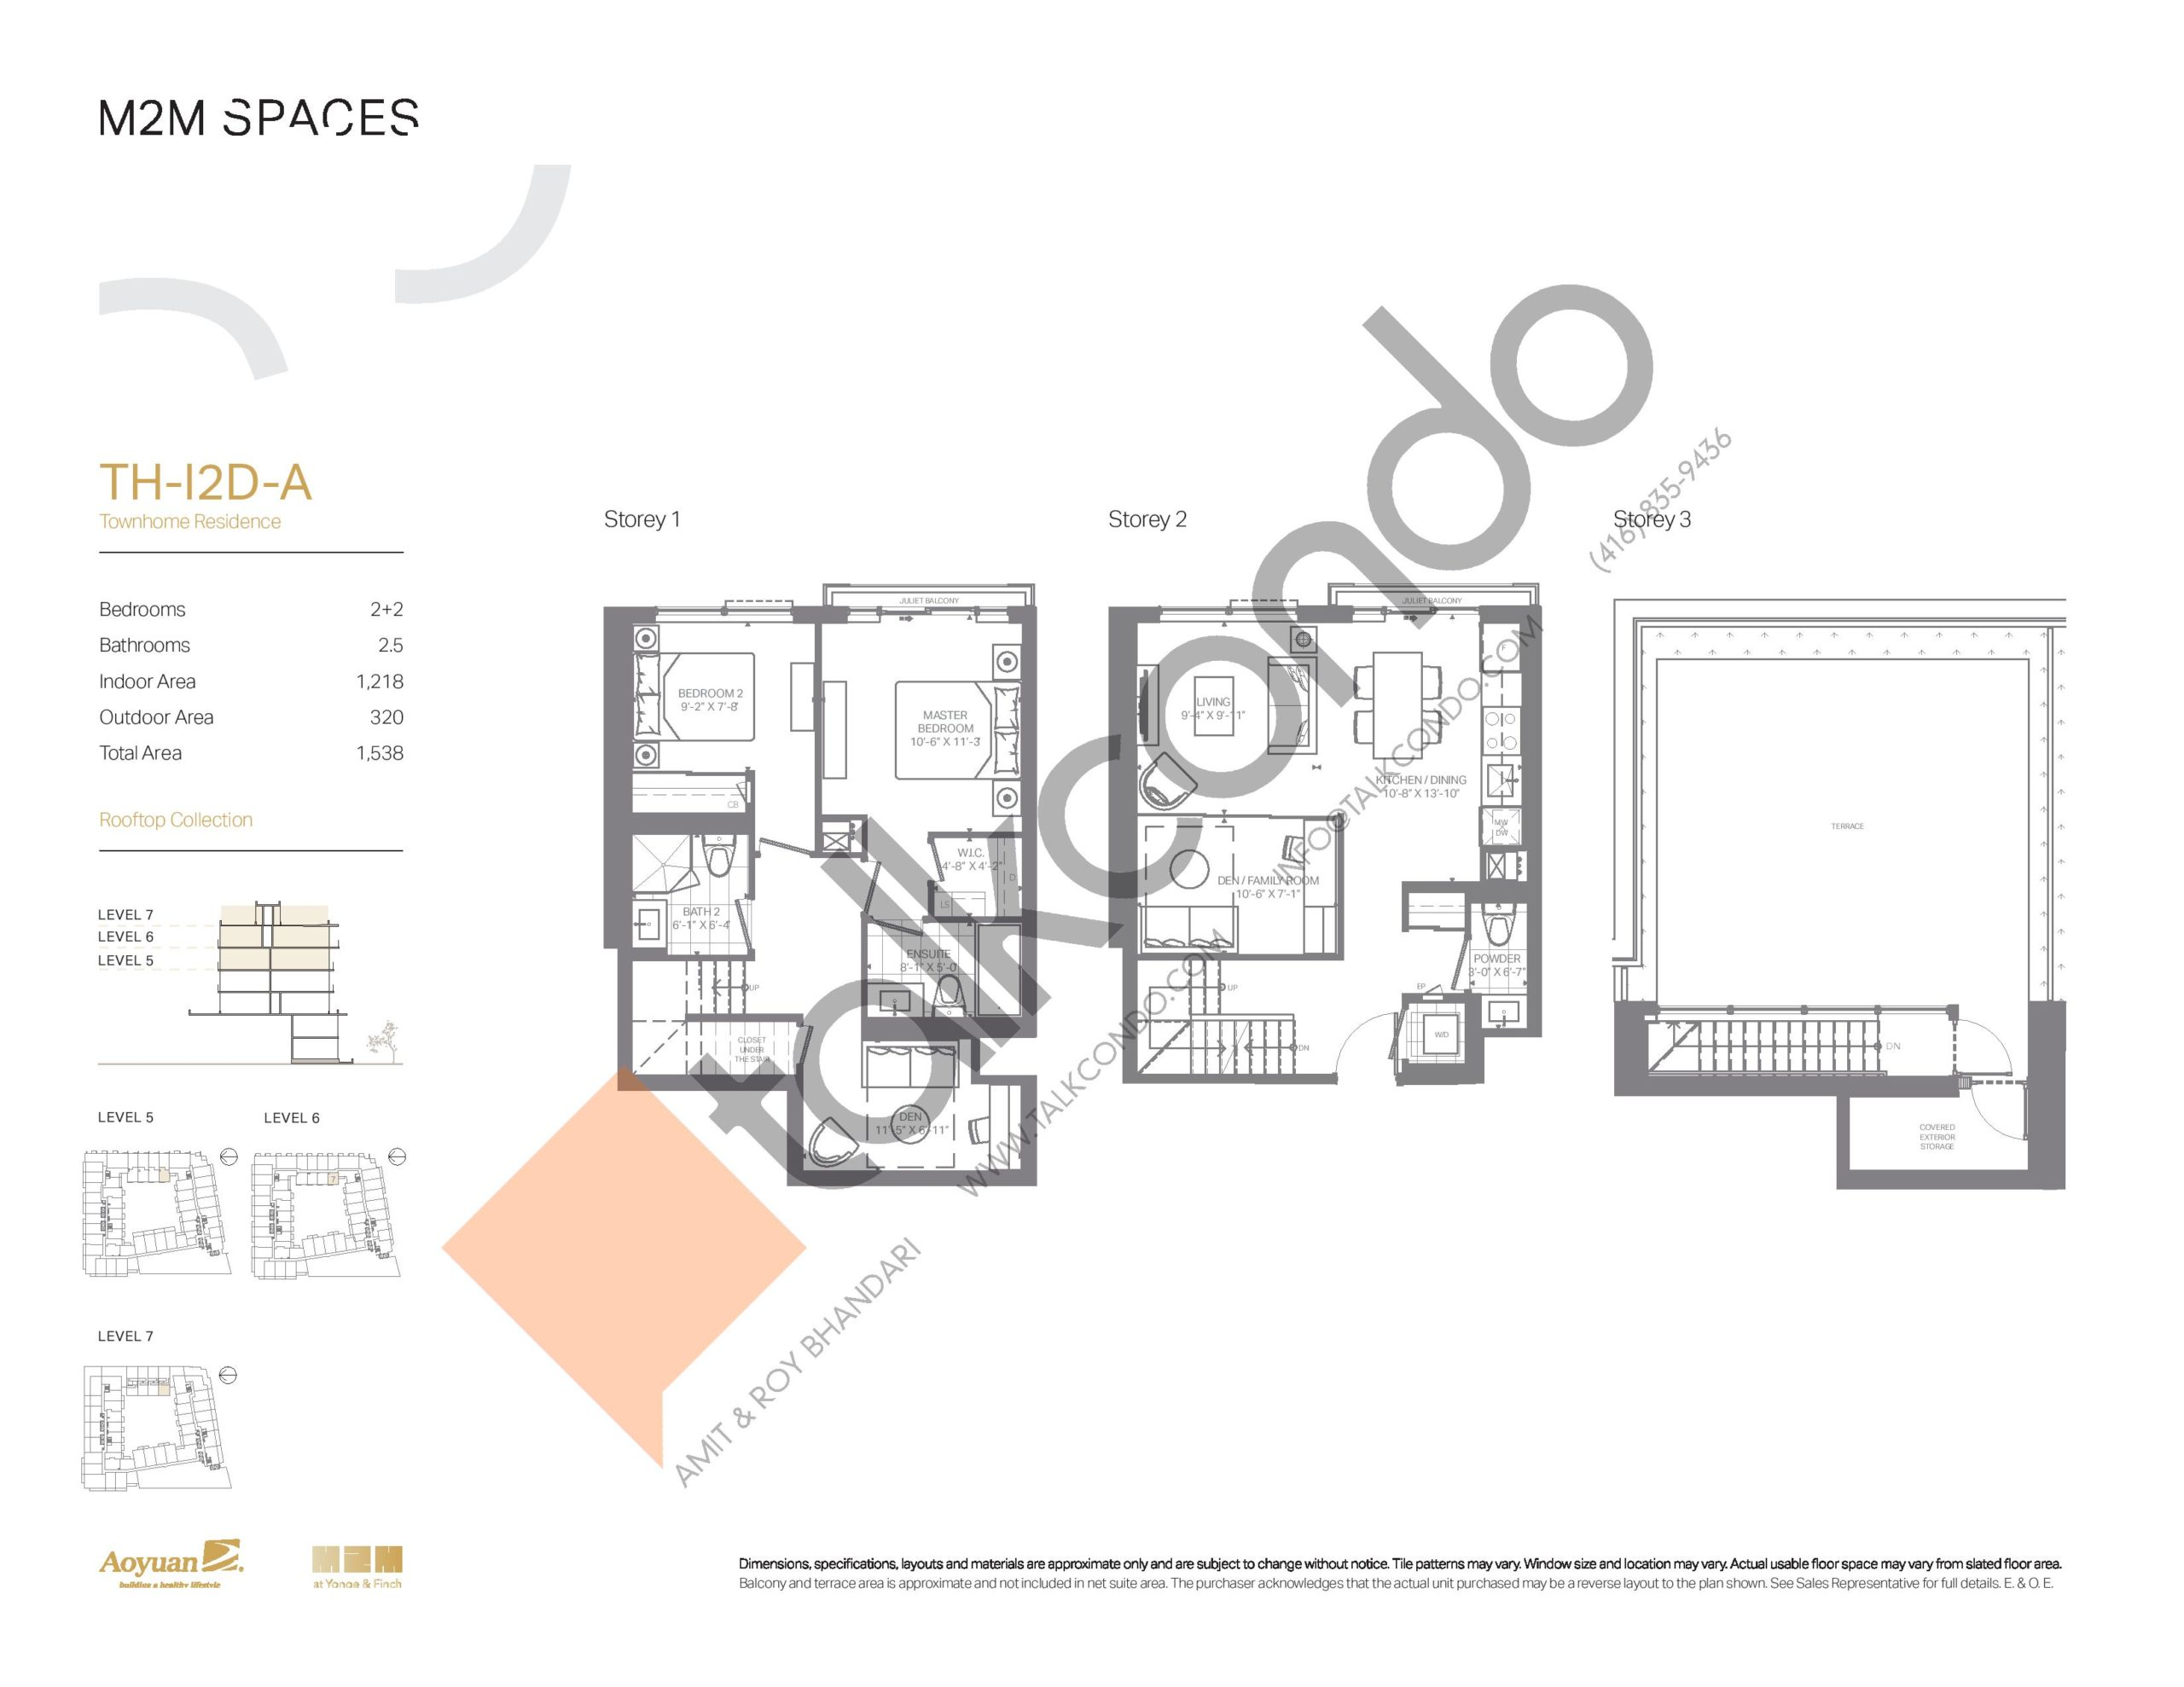 TH-I2D-A (Rooftop Collection) Floor Plan at M2M Spaces Condos - 1218 sq.ft